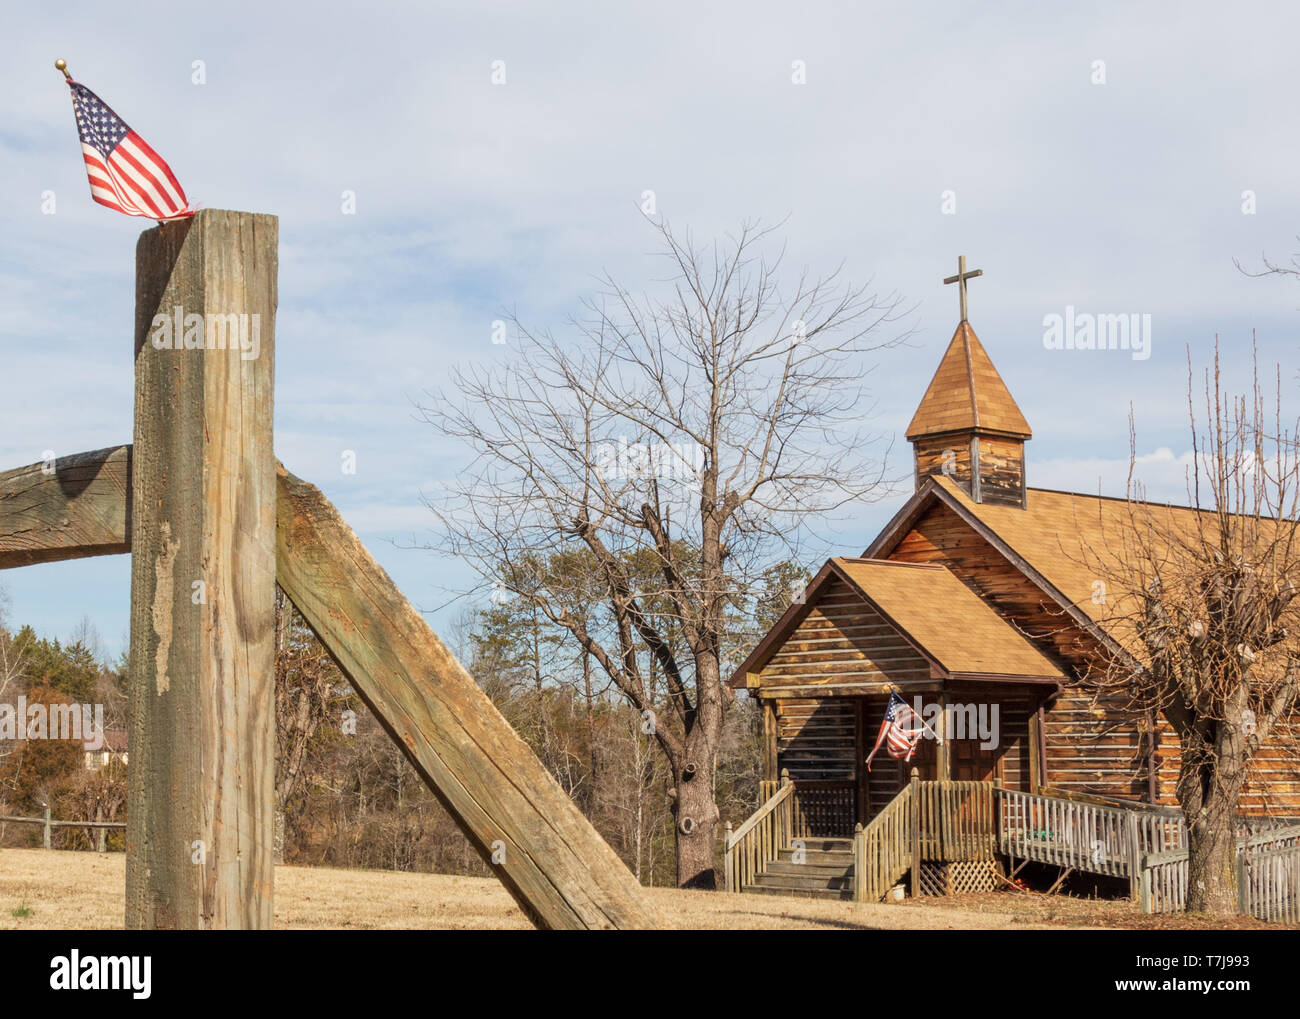 CHESTERFIELD, NC, USA-2/7/15:  Rural log church with rail fence in foreground and American flags. - Stock Image